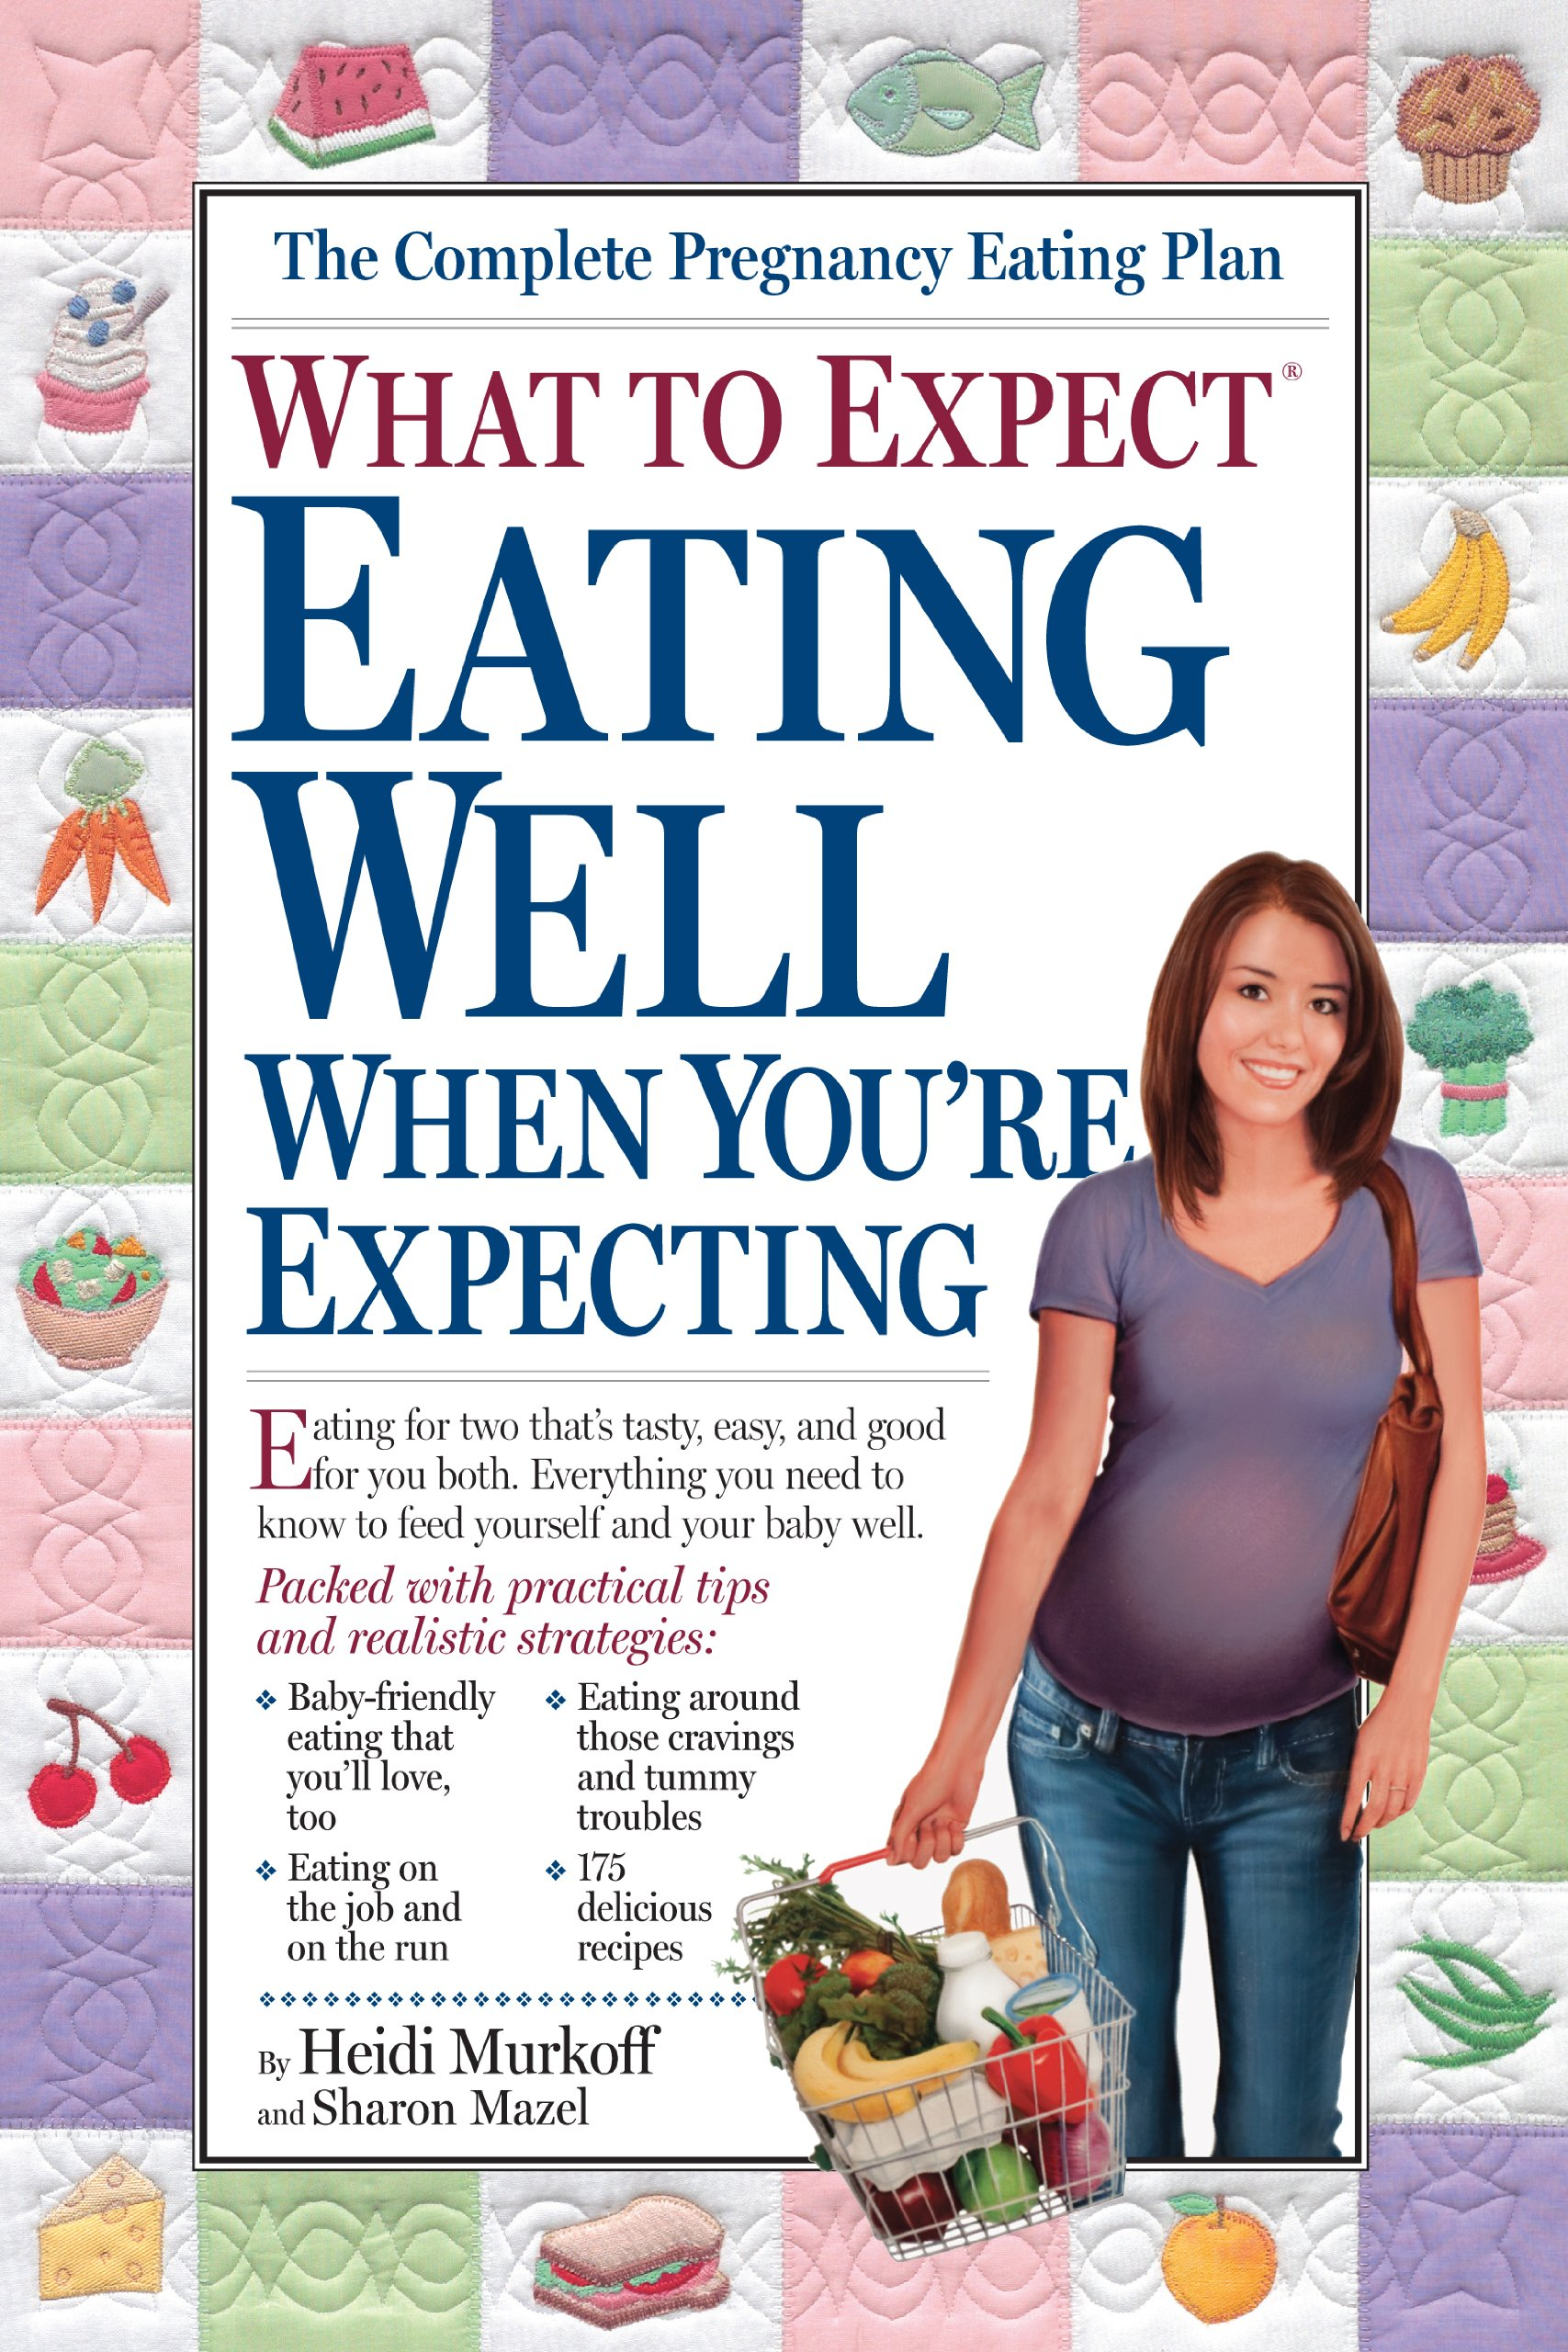 what to expect eating well when you re expecting heidi murkoff what to expect eating well when you re expecting heidi murkoff sharon mazel 8580001049182 com books